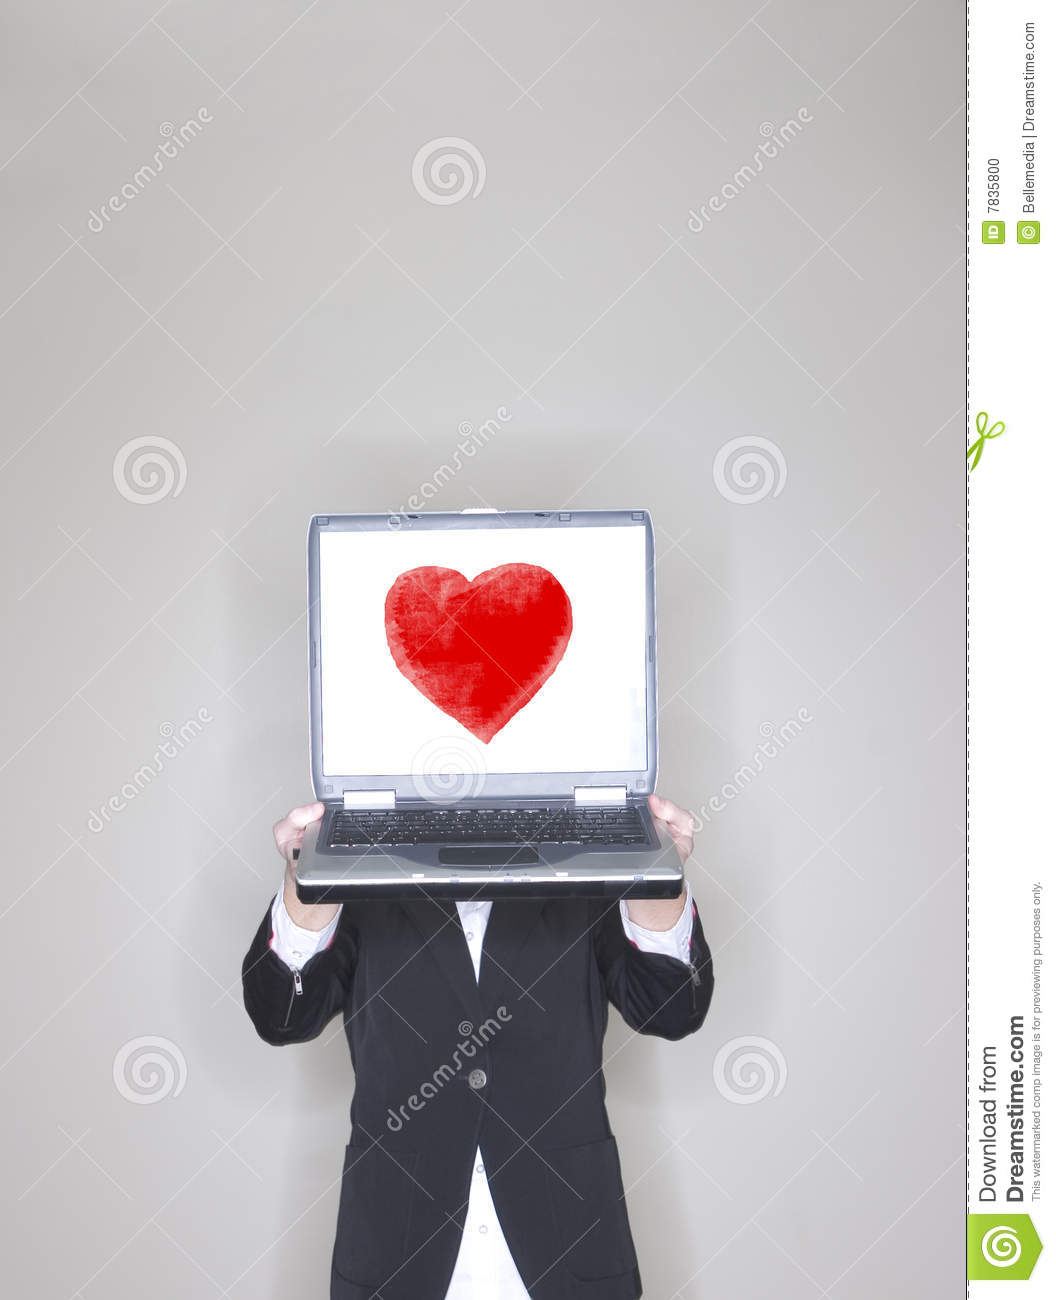 Businesswoman holding laptop with heart